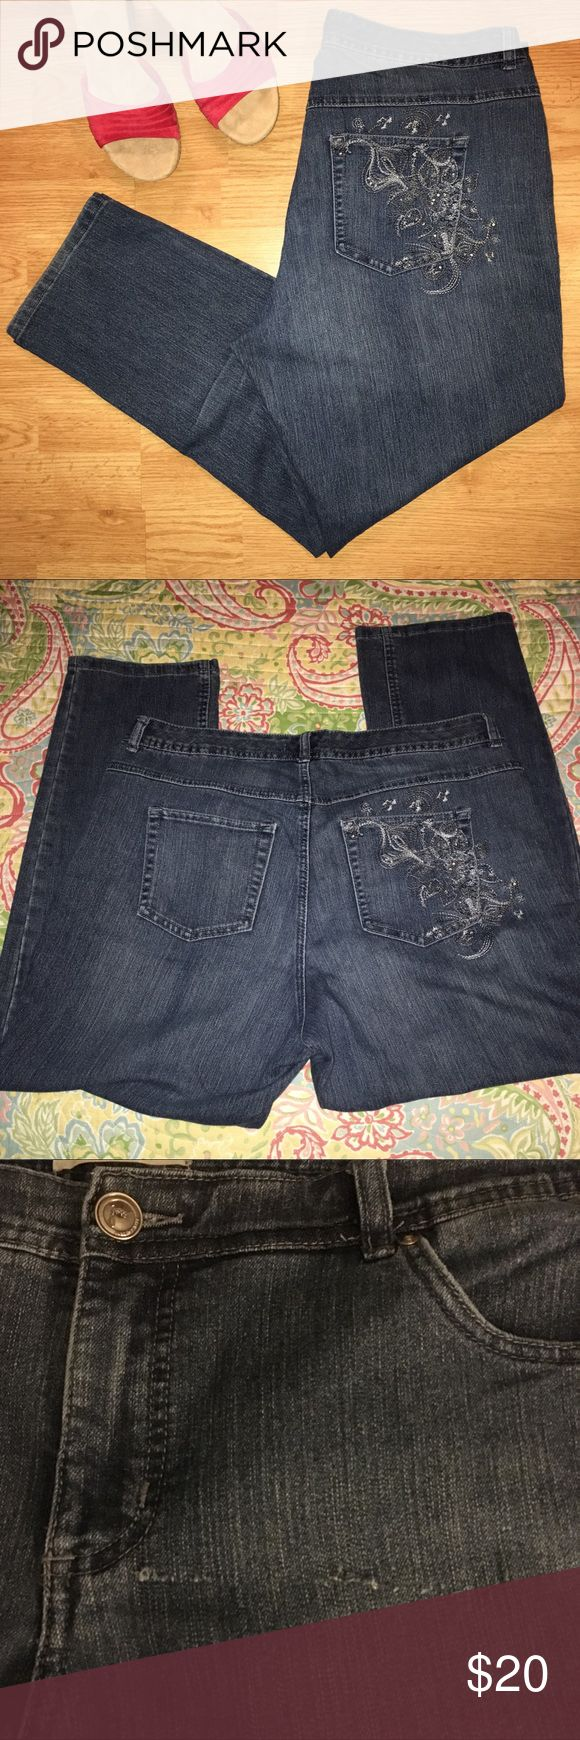 ➕ ❤️ JUST MY SIZE STRAIGHT LEG JEANS Just My Size stretch straight leg jeans. Cotton, polyester, spandex blend. Embellished front and back right pockets. See measurements in photos. One small flaw shown in photo 3. Smoke free. Bundle for additional savings. 🛍 Just My Size Jeans Straight Leg